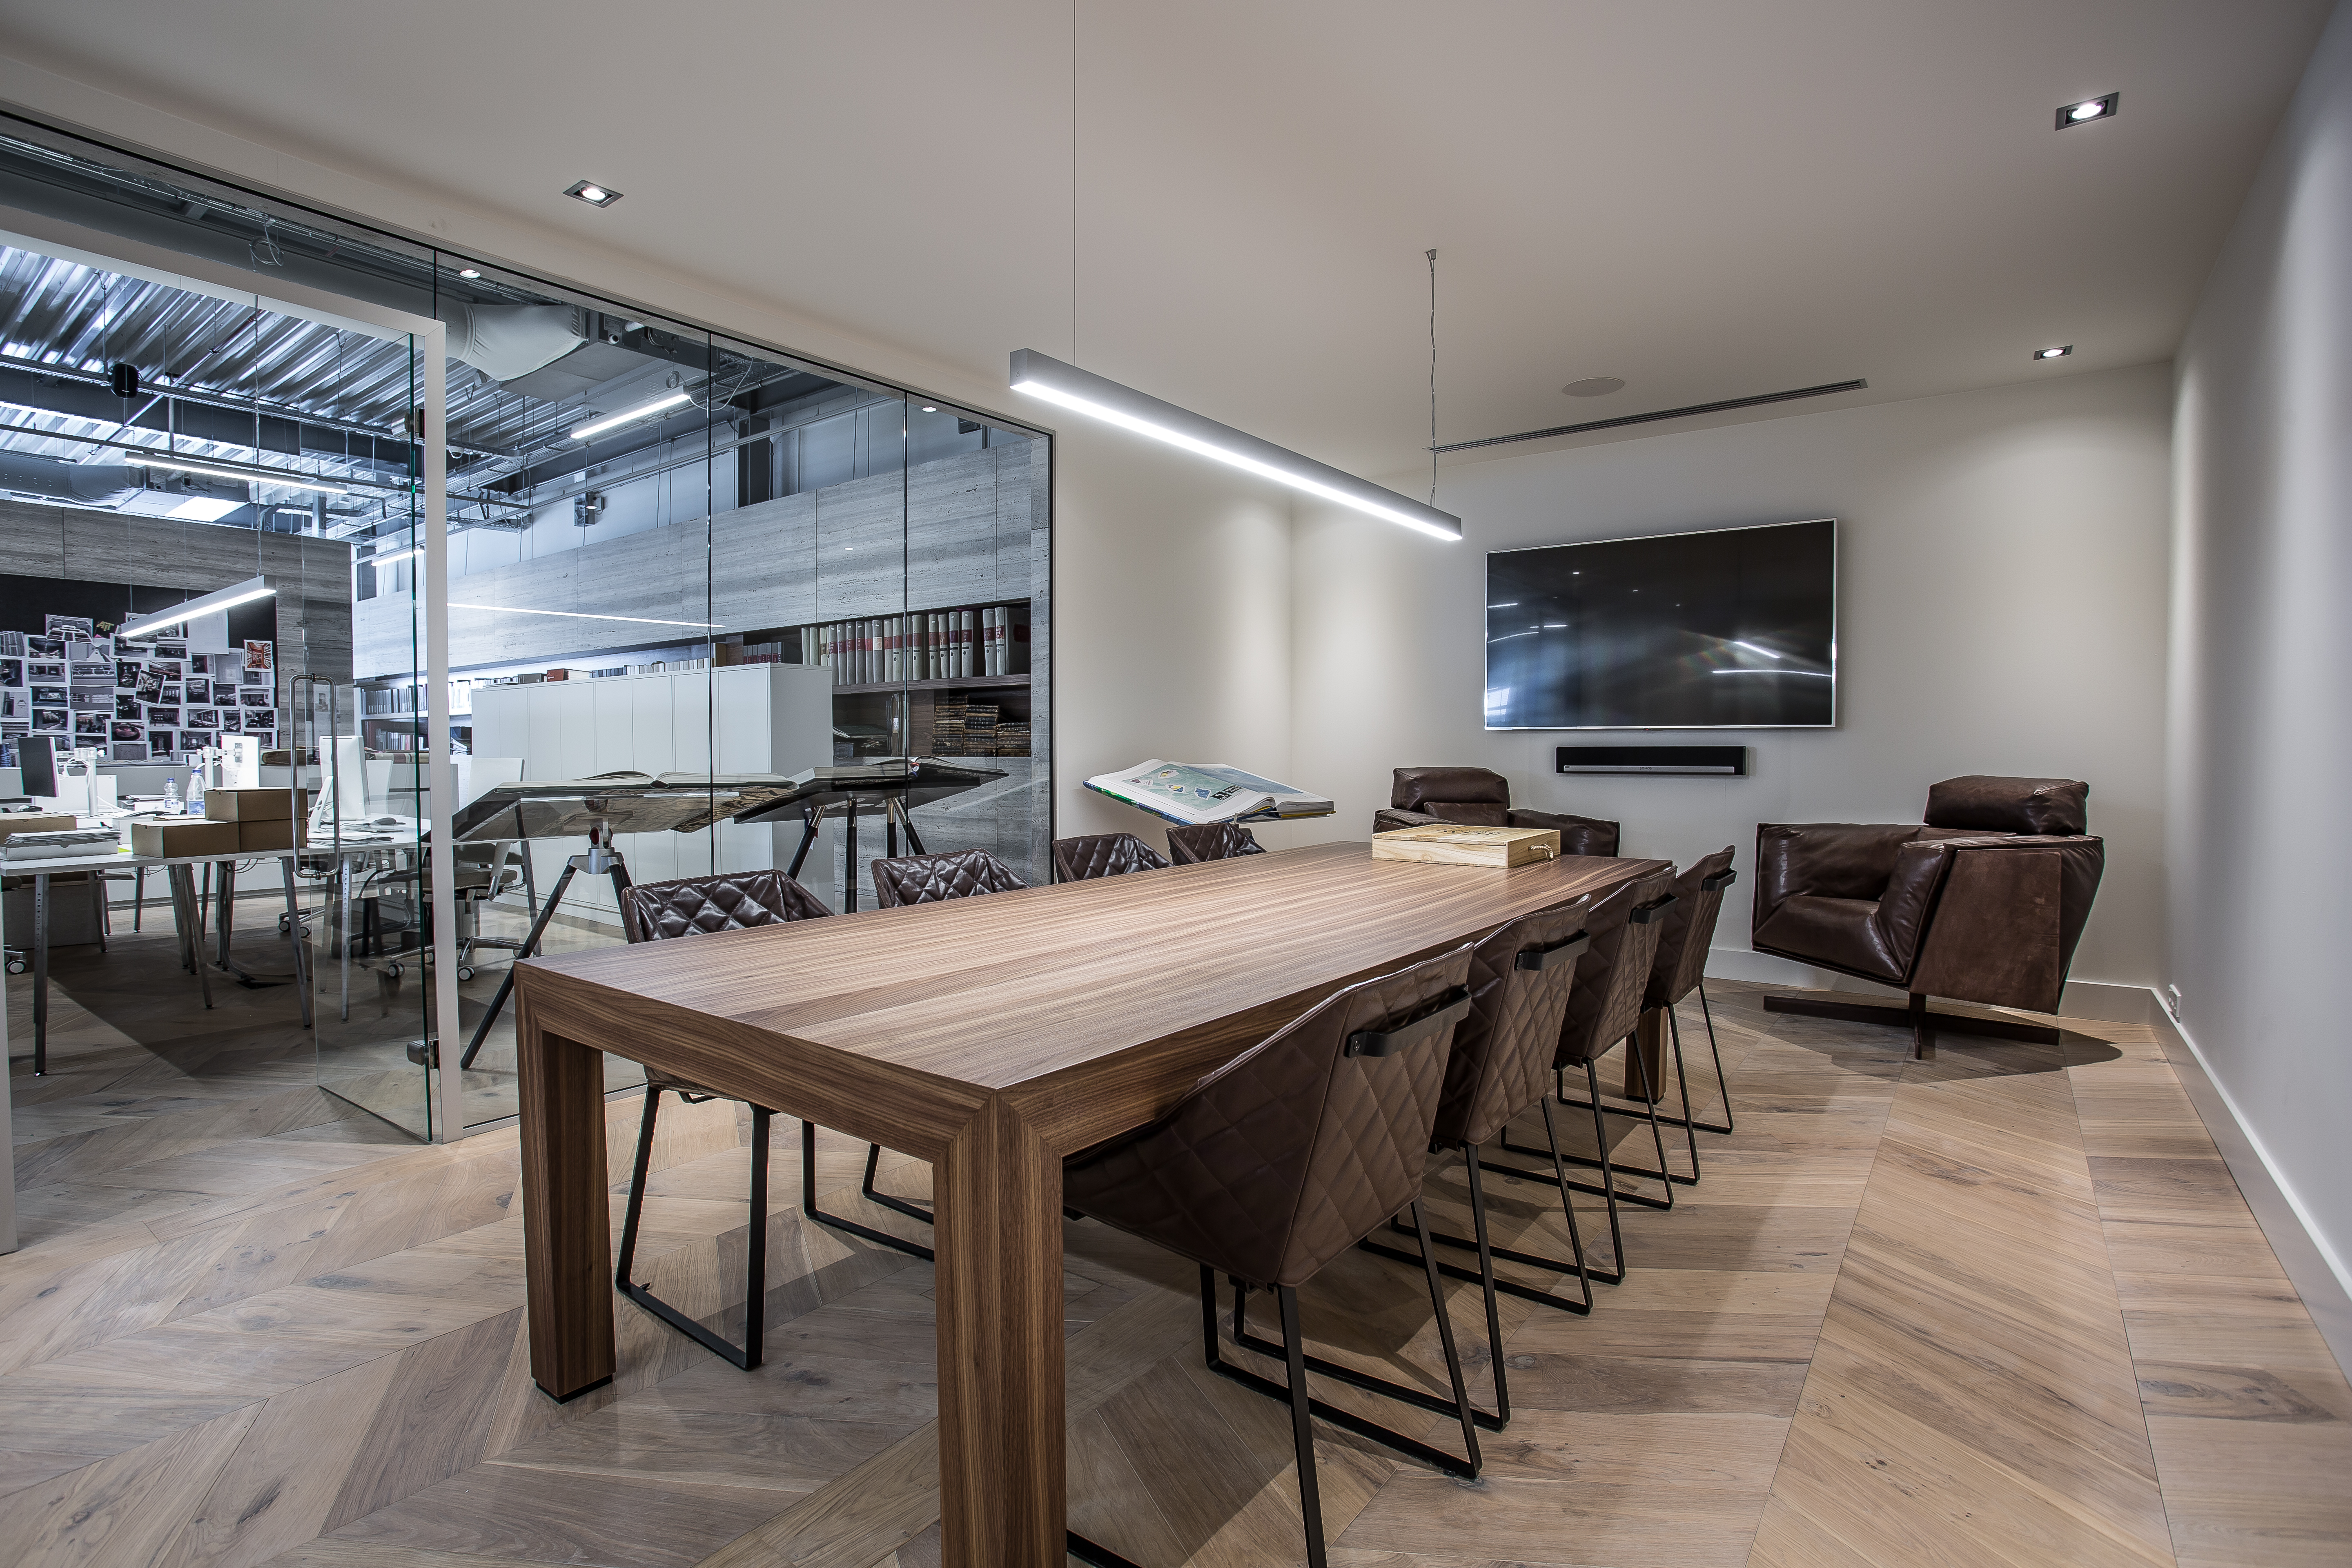 bw-interieur-oost-coulisse-high-res-2762